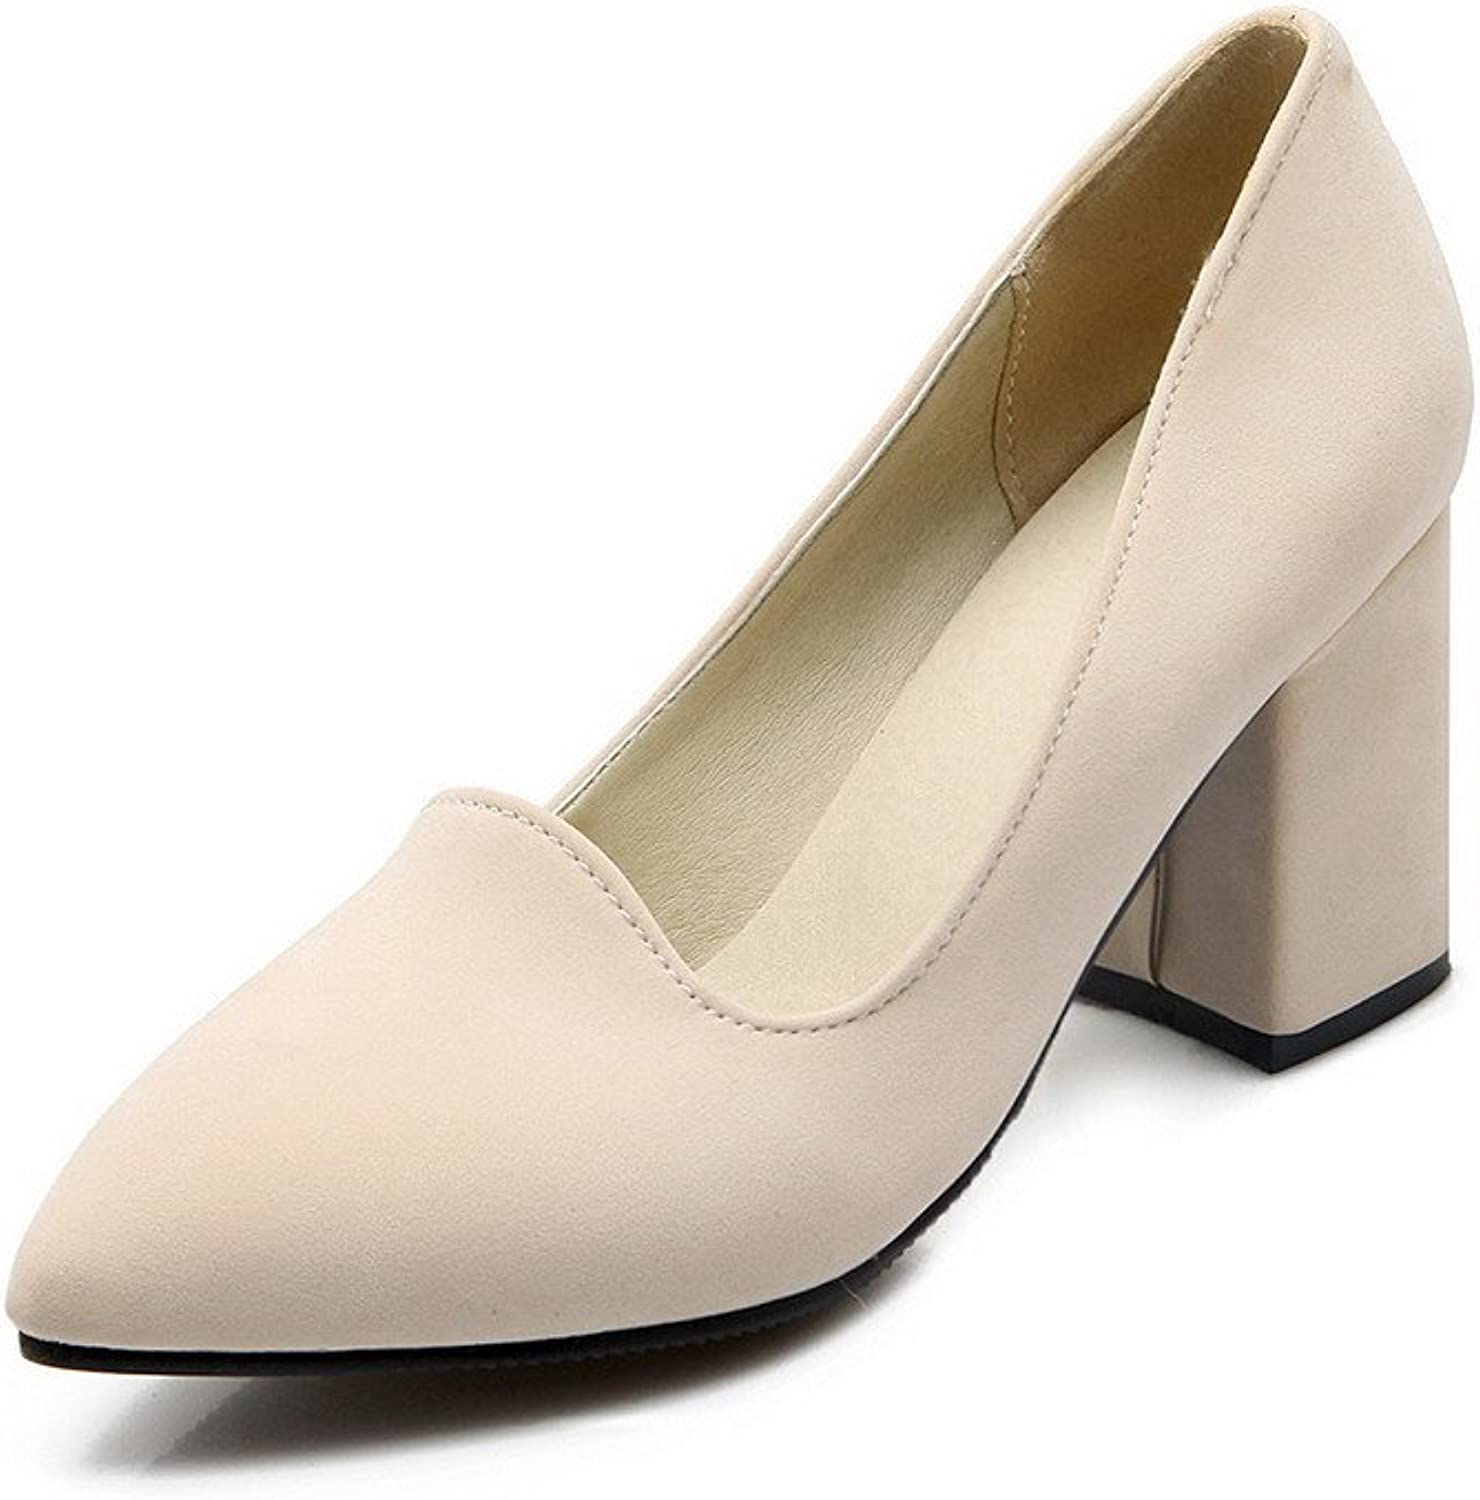 WeenFashion Women's Frosted Pull-on Pointed Closed Toe High-Heels Solid Pumps-shoes